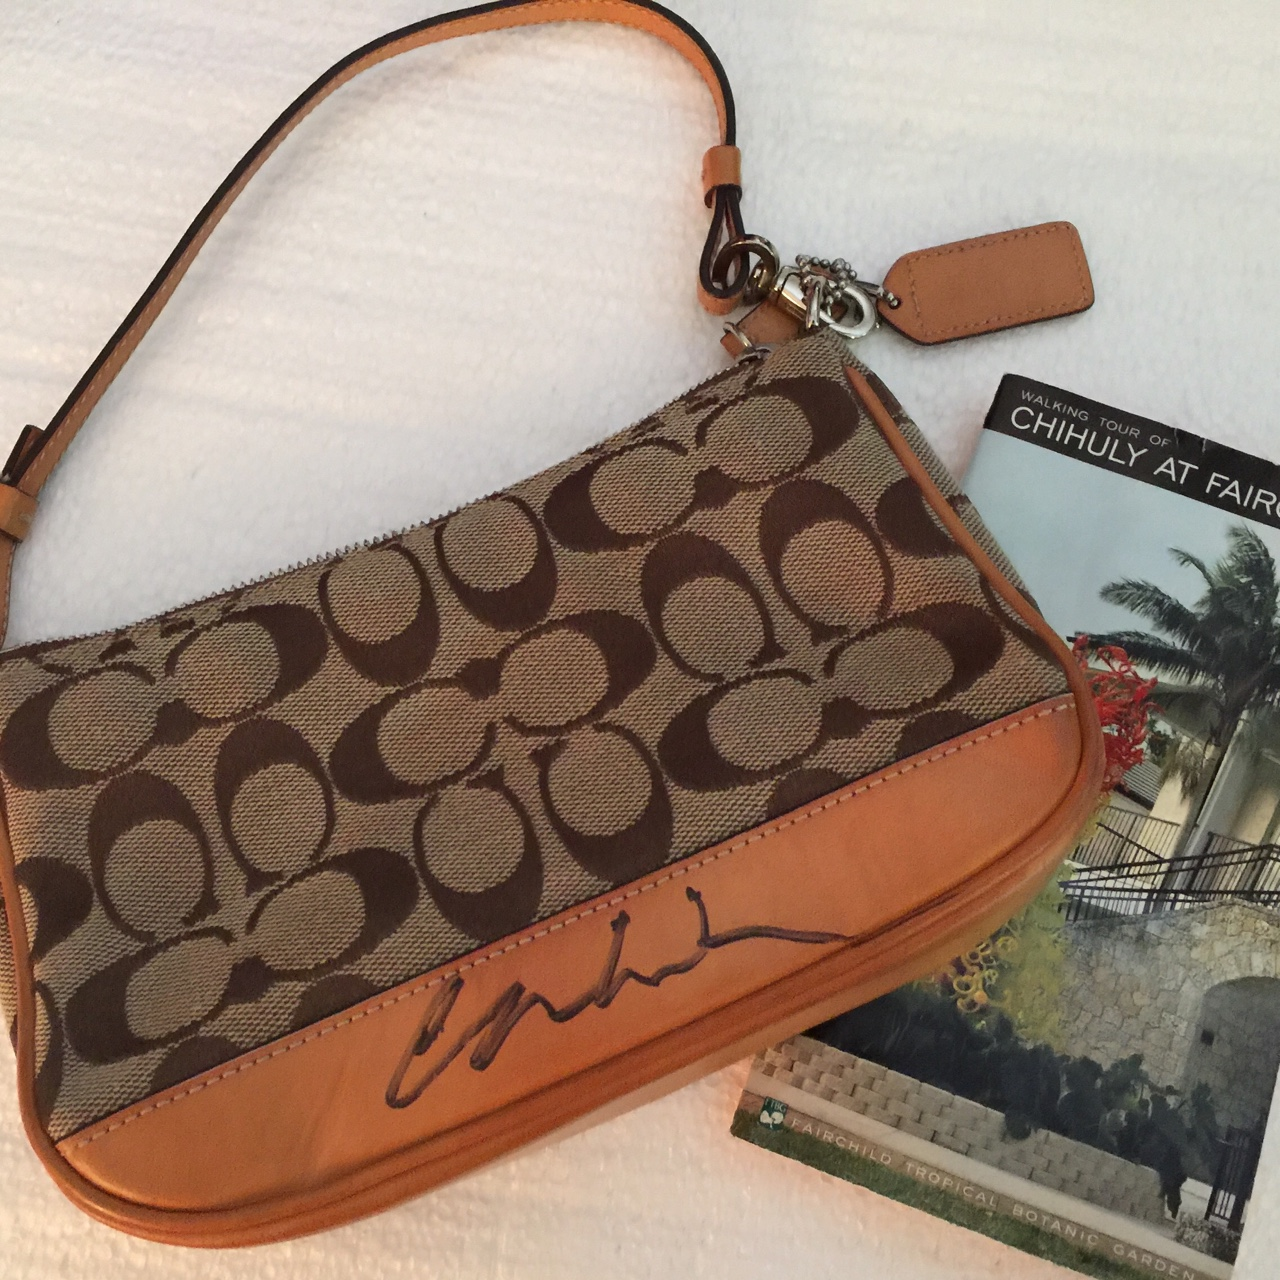 Autographed Dale Chihuly coach purse(pochette).One...